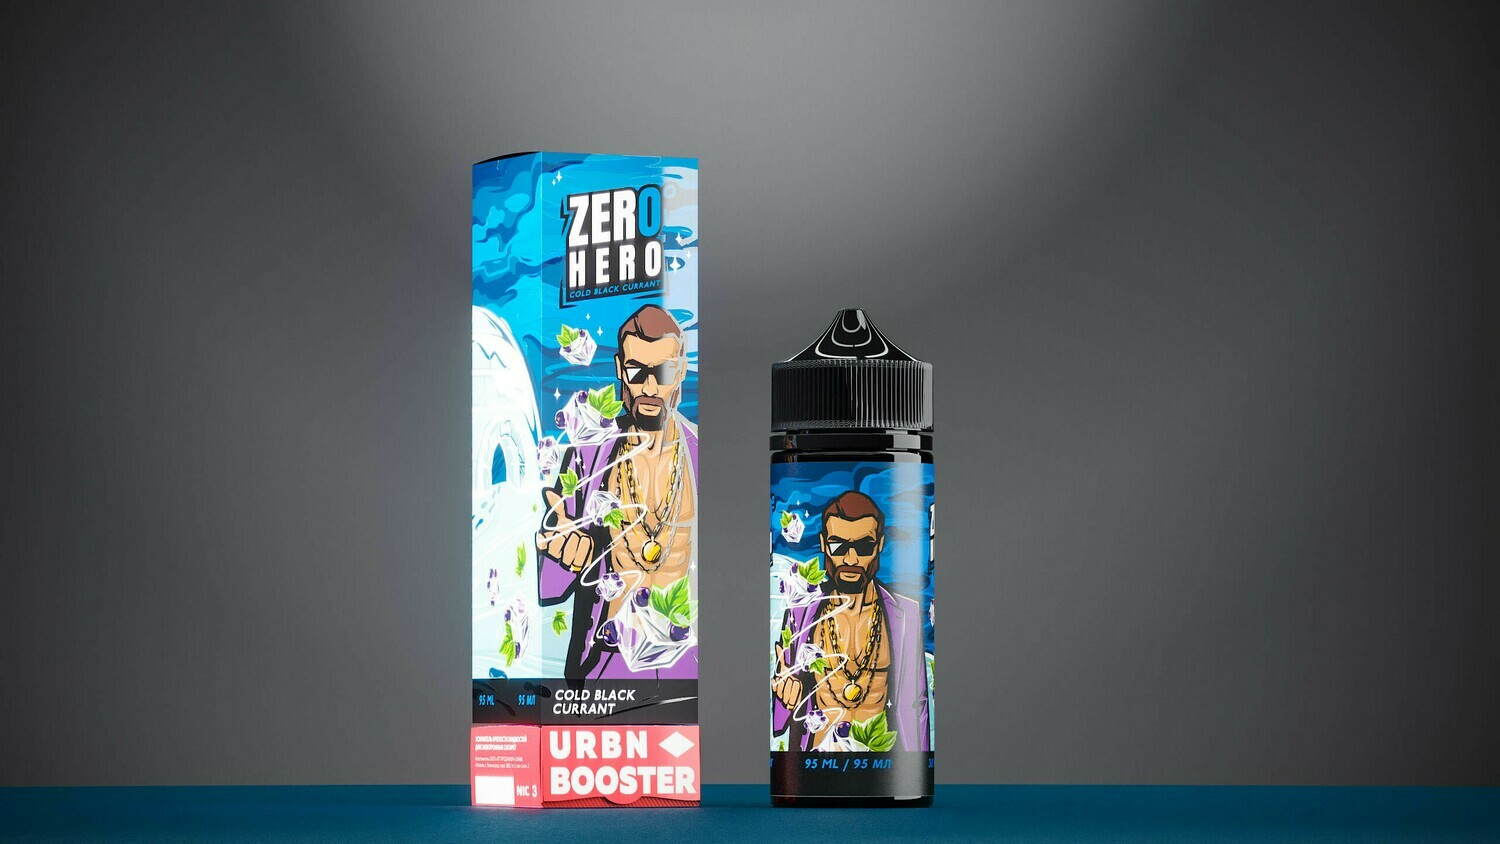 ZERO HERO BY URBN: COLD BLACK CURRANT 95ML 0MG